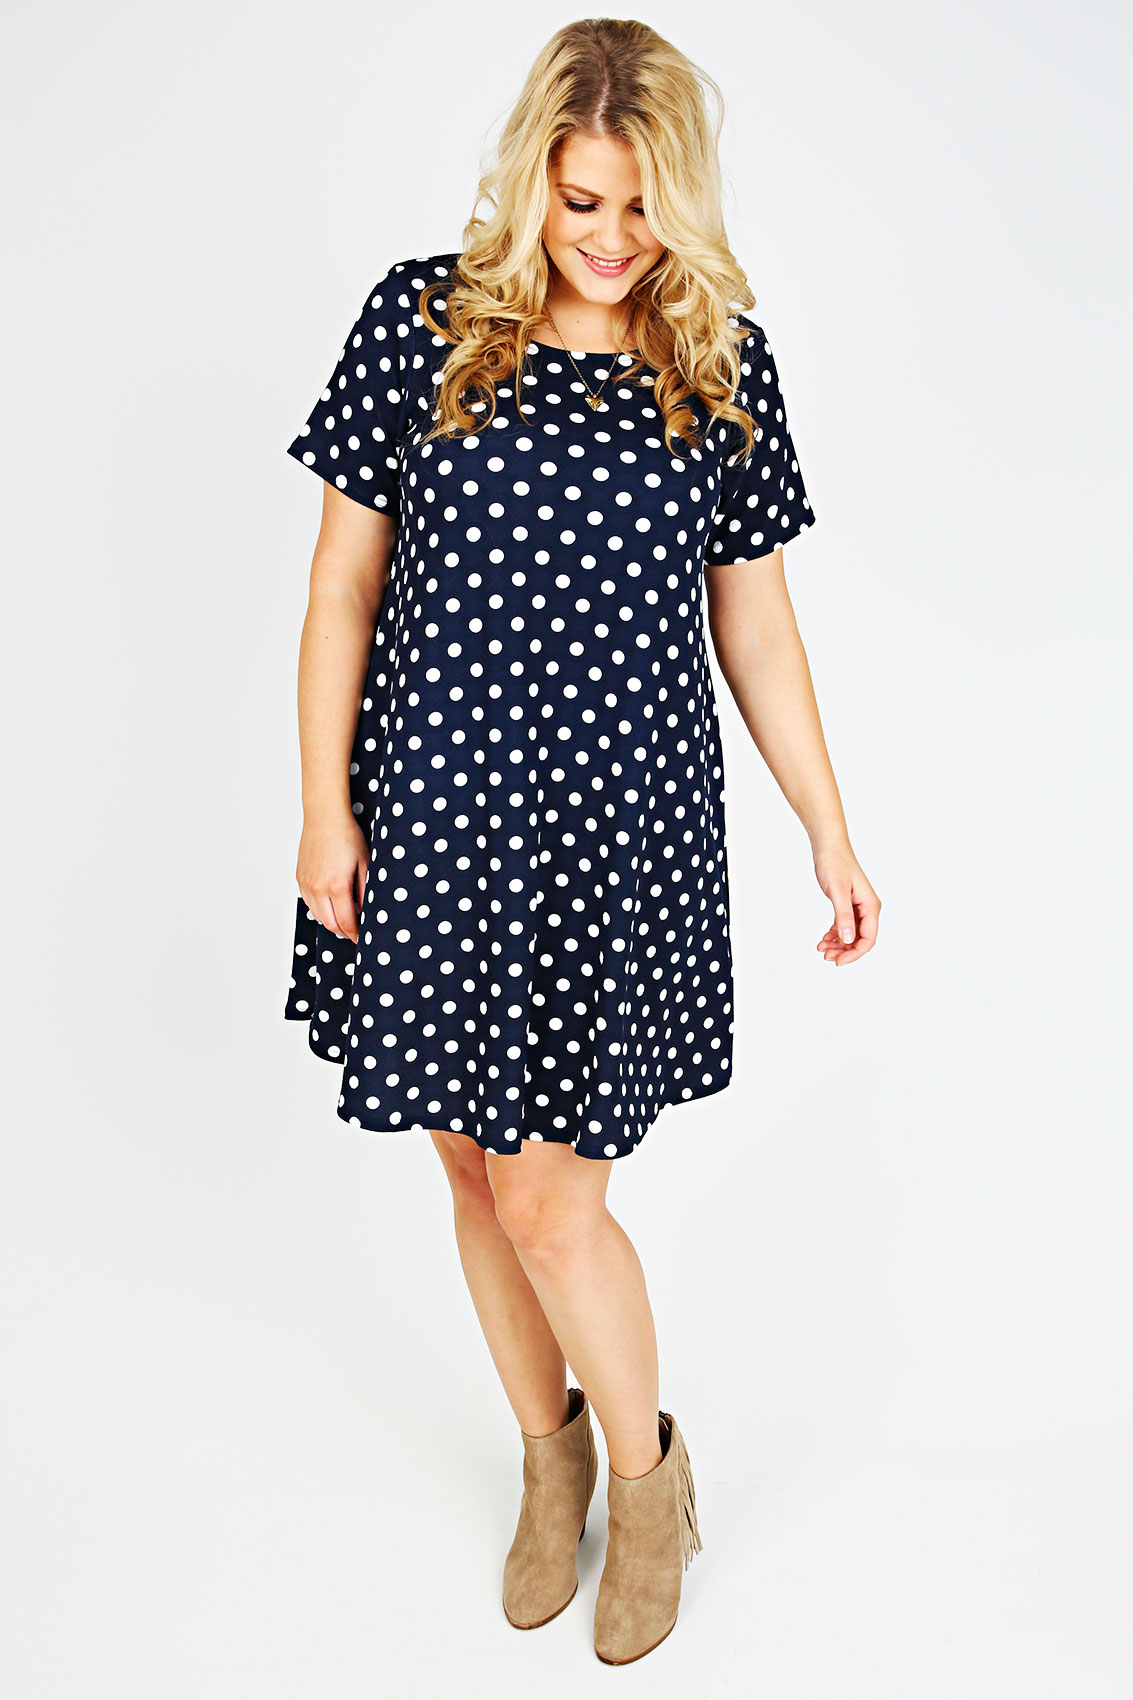 Shop navy blue, black and red polka dot dresses, or keep things time-honored with a black and white polka dot dress with a splashy profile. Sort by Featured Best Selling Alphabetically, A-Z Alphabetically, Z-A Price, low to high Price, high to low Date, new to old Date, old to new.